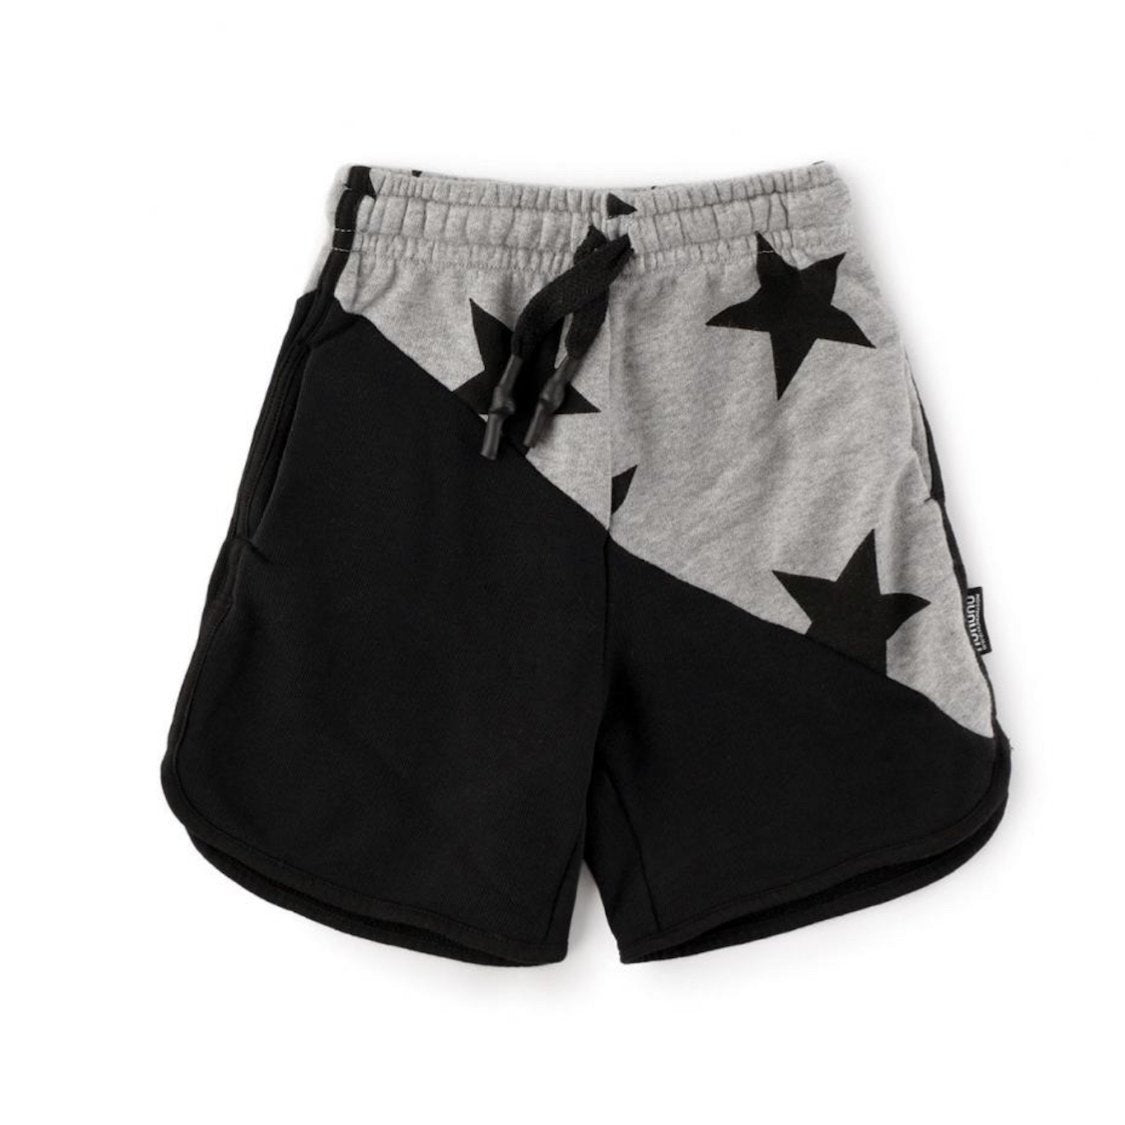 NU2557 - Nununu Unisex 1/2 and 1/2 Star Sweatshorts Shorts Nununu